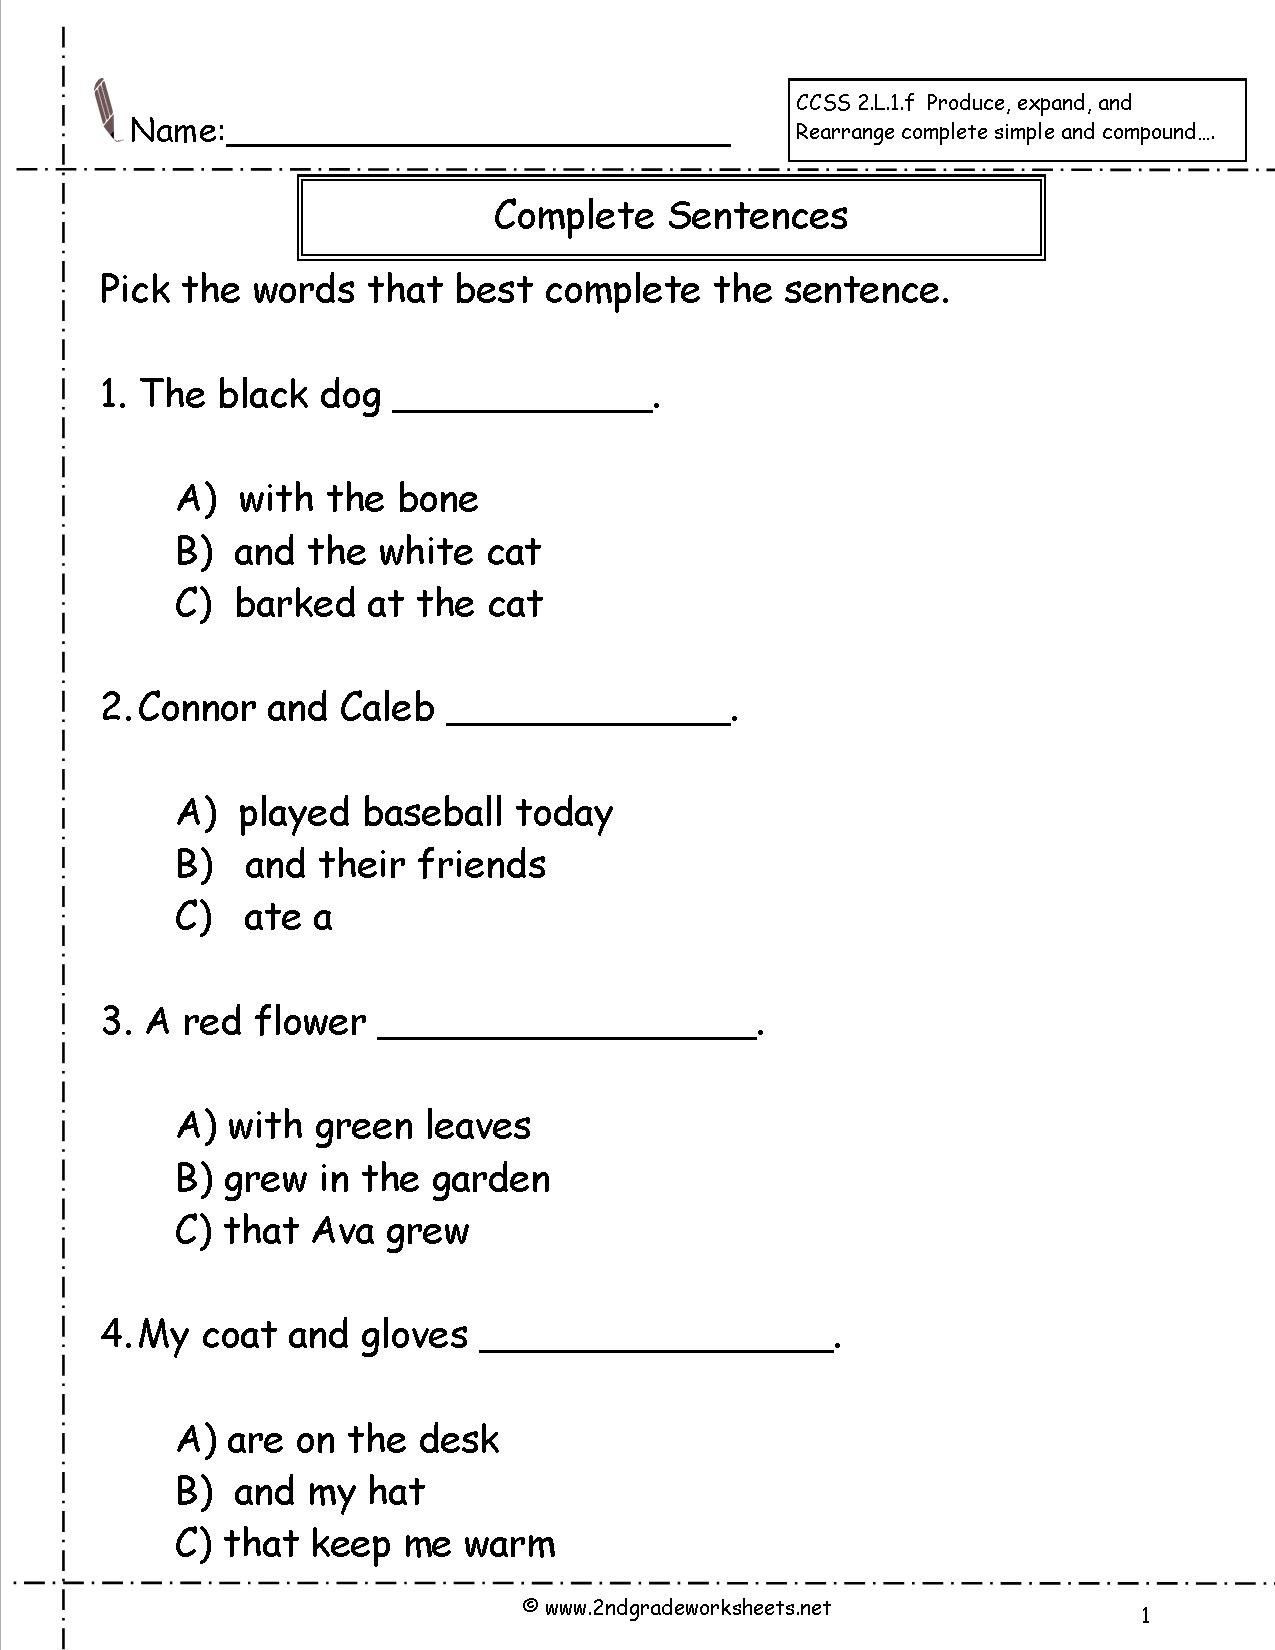 Complete Sentences Worksheets 3rd Grade Pin On Educational Worksheets Template